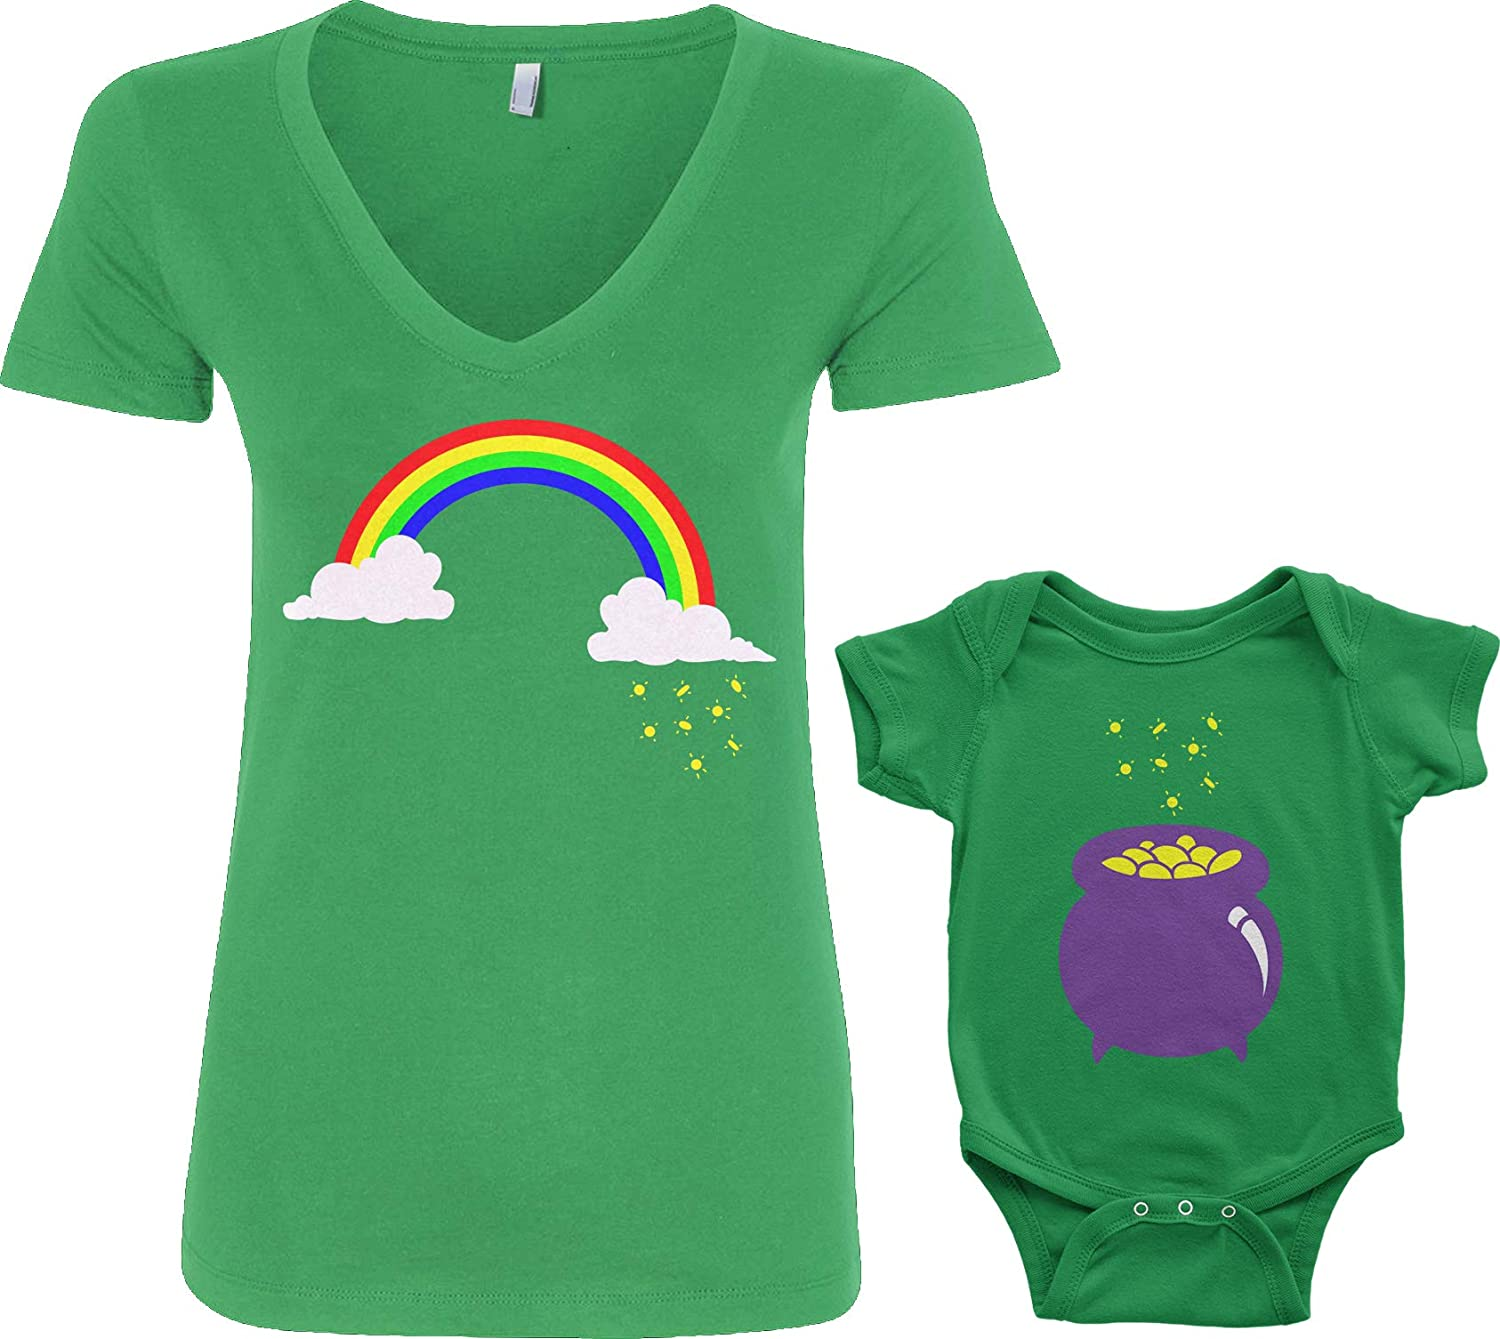 Baby: 12M, Kelly Green|V-Neck: M, Kelly Green Threadrock Rainbow /& Pot of Gold Infant Bodysuit /& Womens V-Neck T-Shirt Set